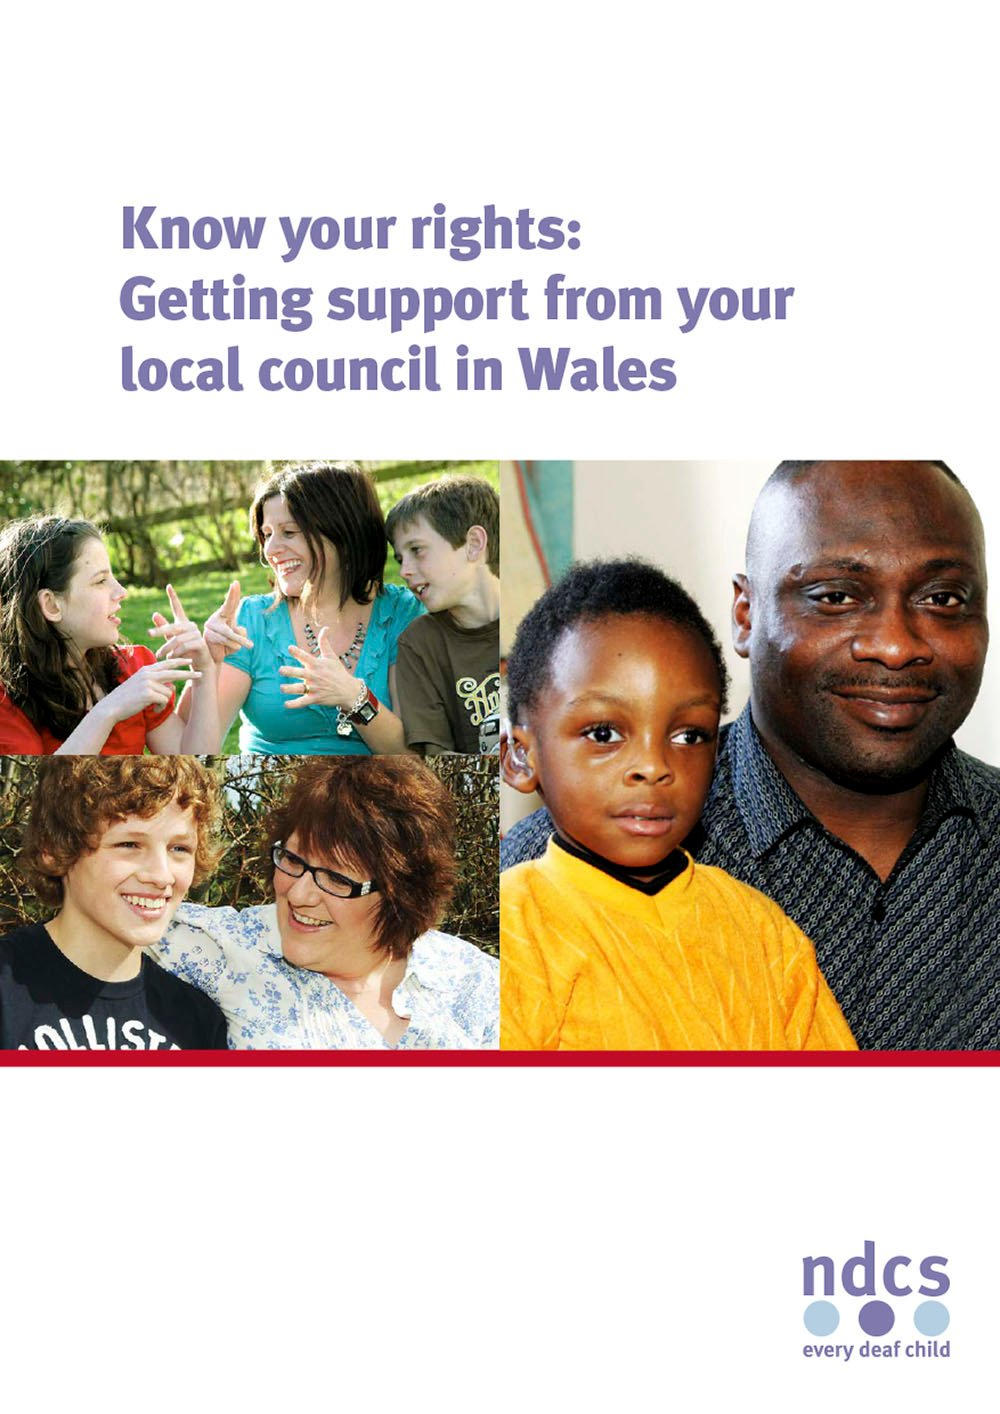 Know your rights: Getting support from your local council in Wales